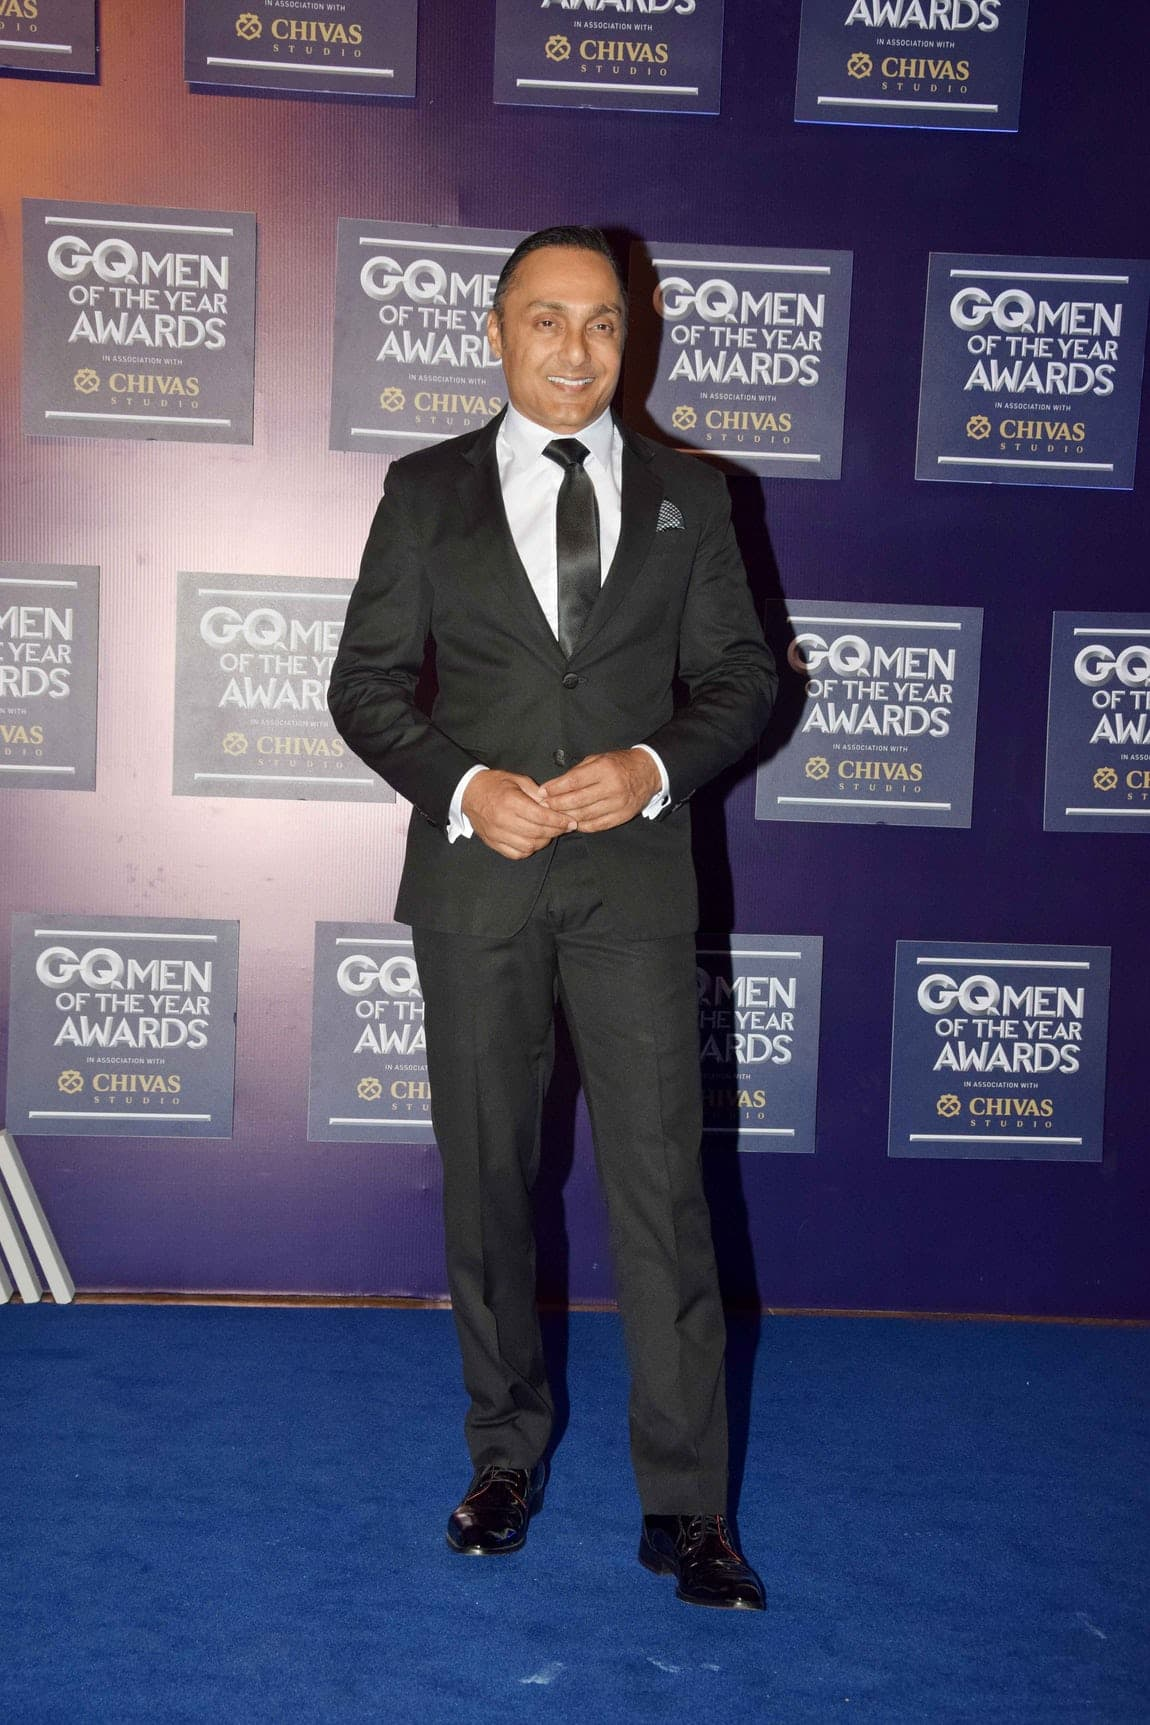 IN PICS: Bollywood Stars Shine And Dazzle At GQ Men's Awards 2017